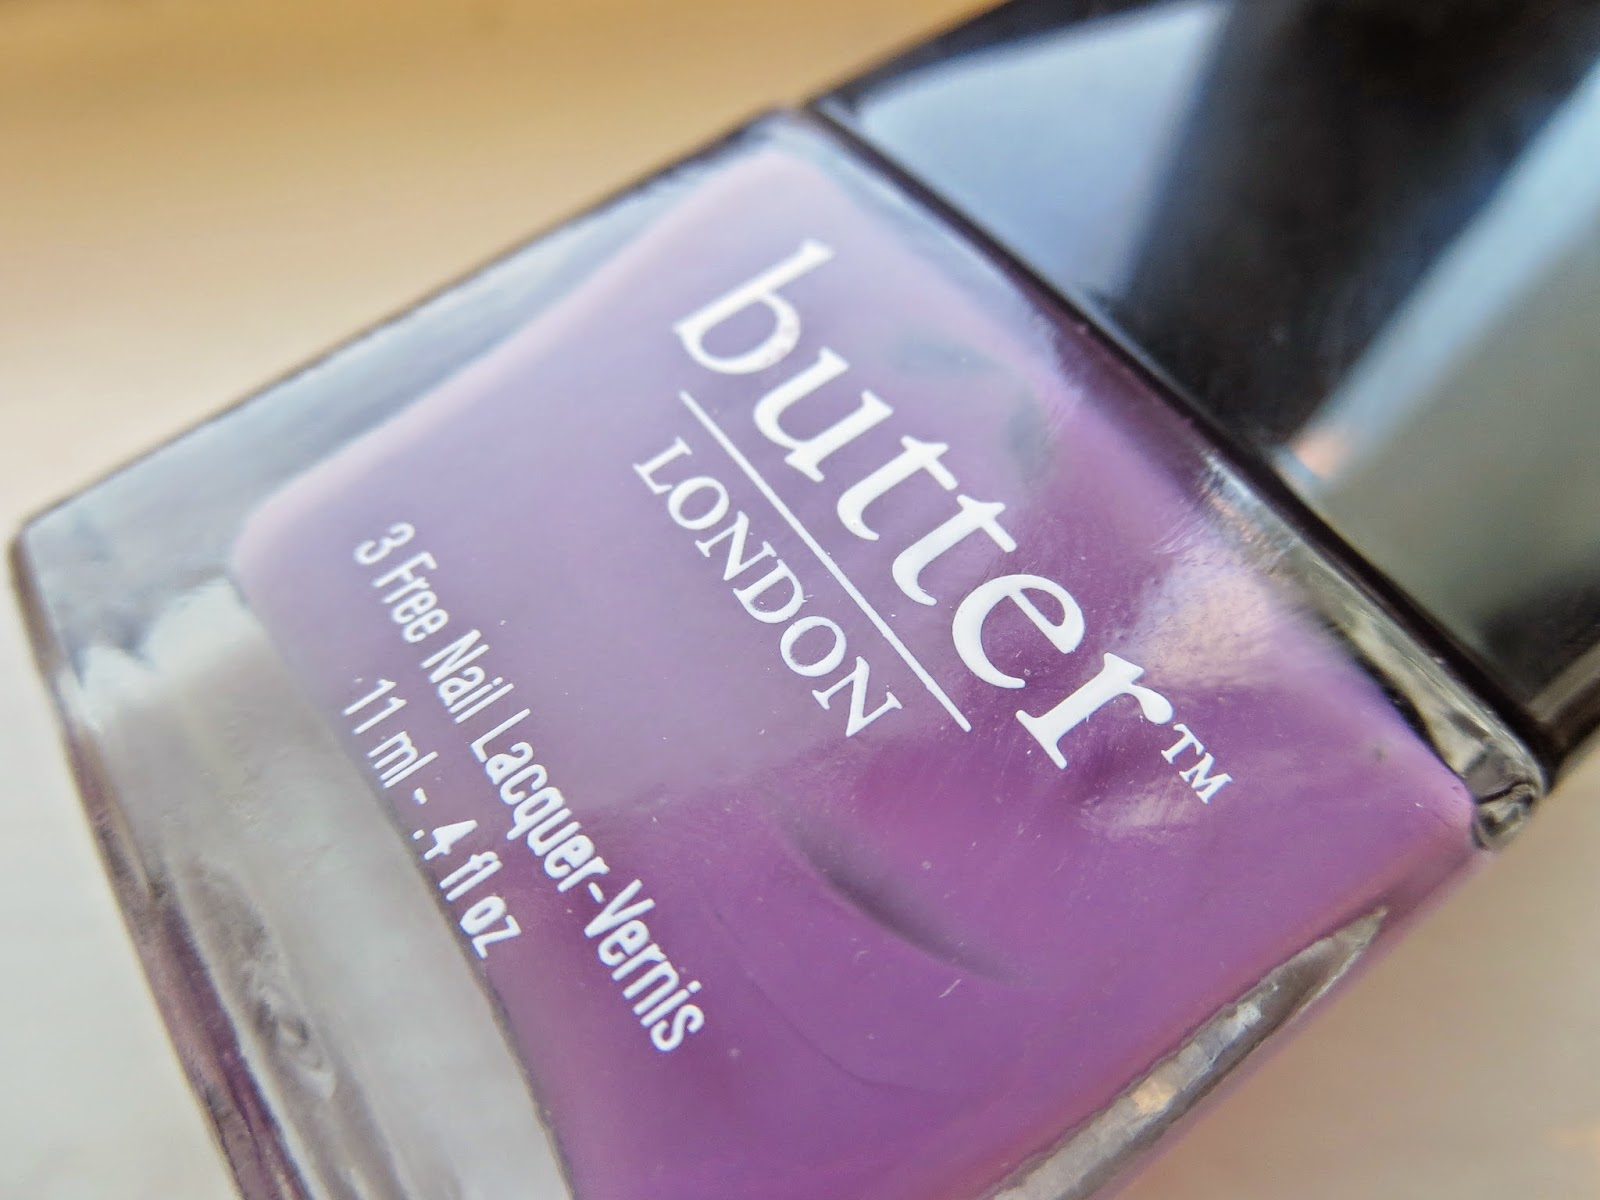 a picture of Butter London Scoundrel nail lacquer